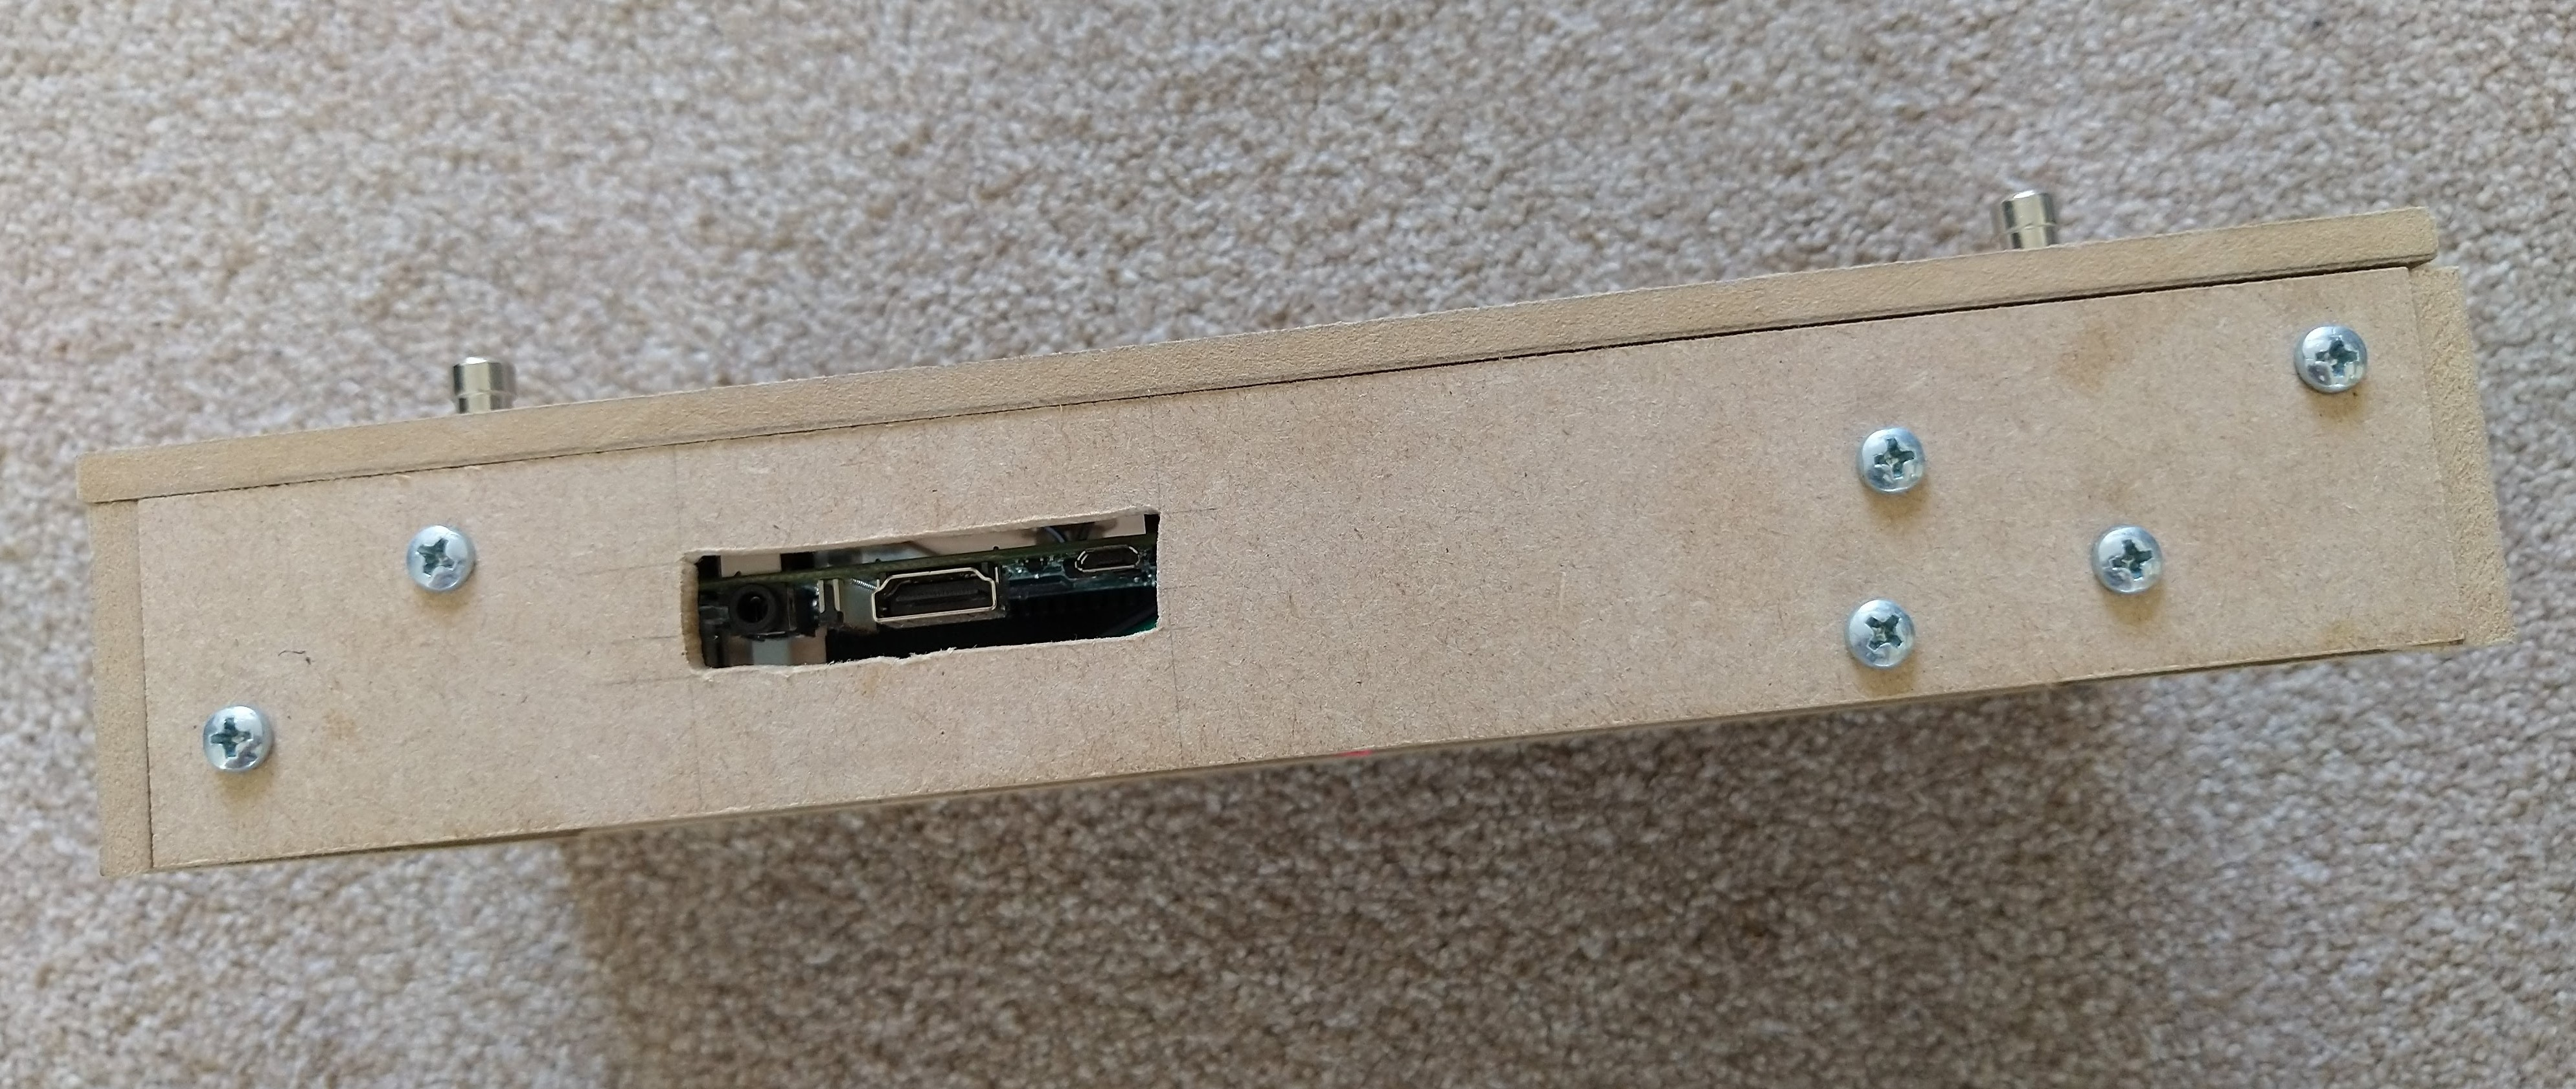 The back edge of the SoundFloored pedal. There are various cross-head screws visible along with a small rectangle cut out of the panel to make the 3.5mm, HDMI and power connections on an internal Raspberry Pi available